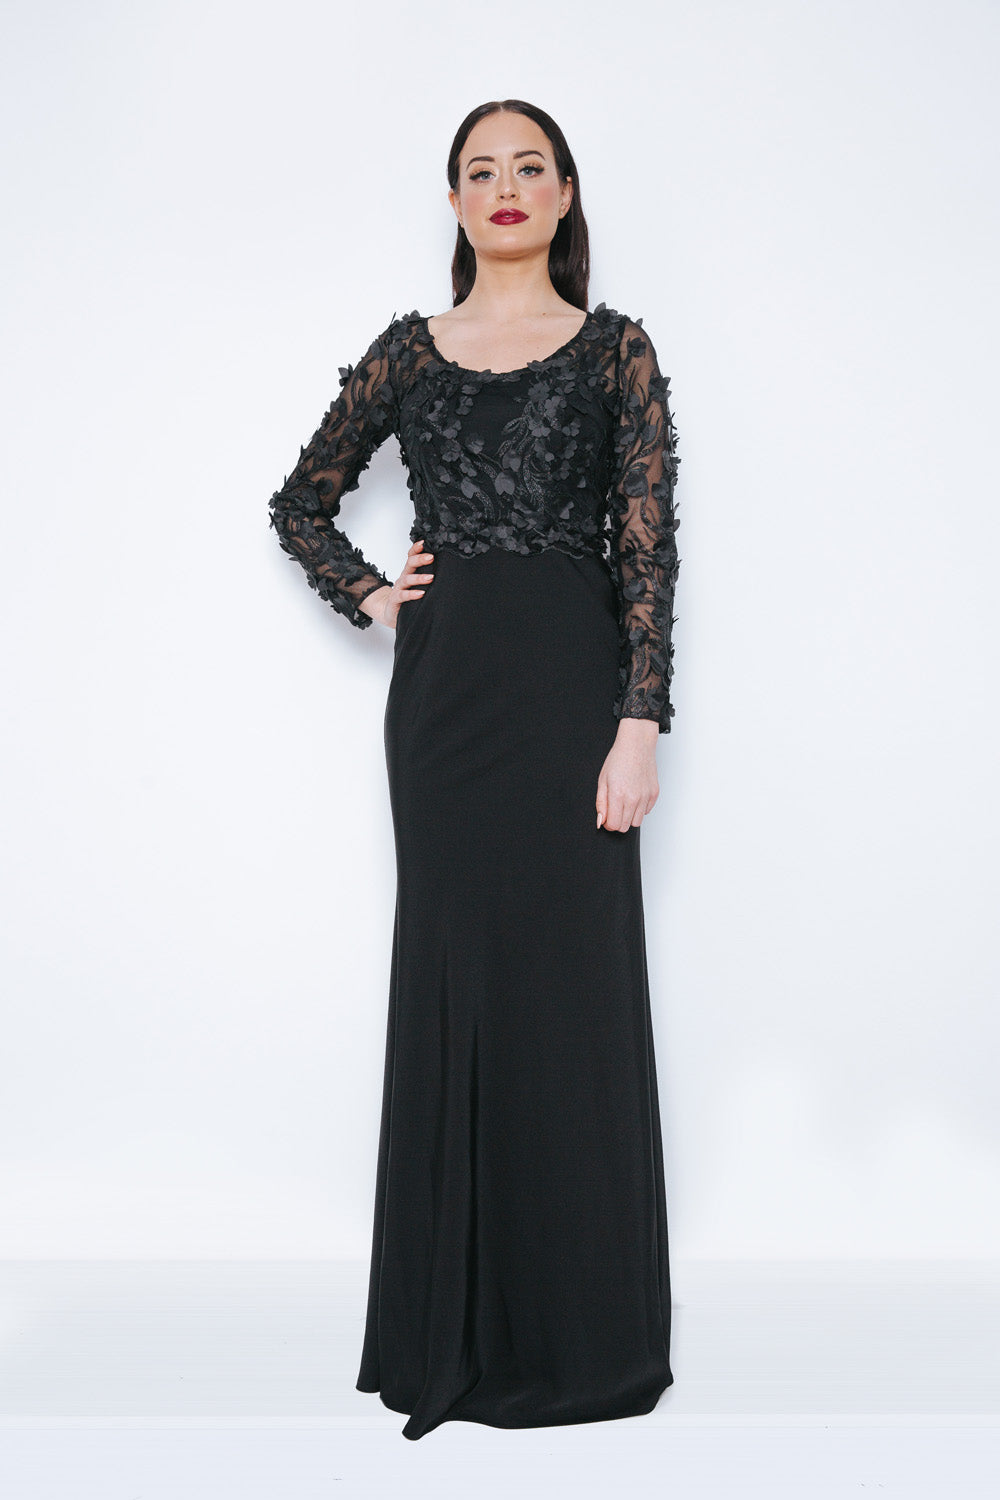 Dynasty London Annely Black Long Evening Gown - Gissings Boutique